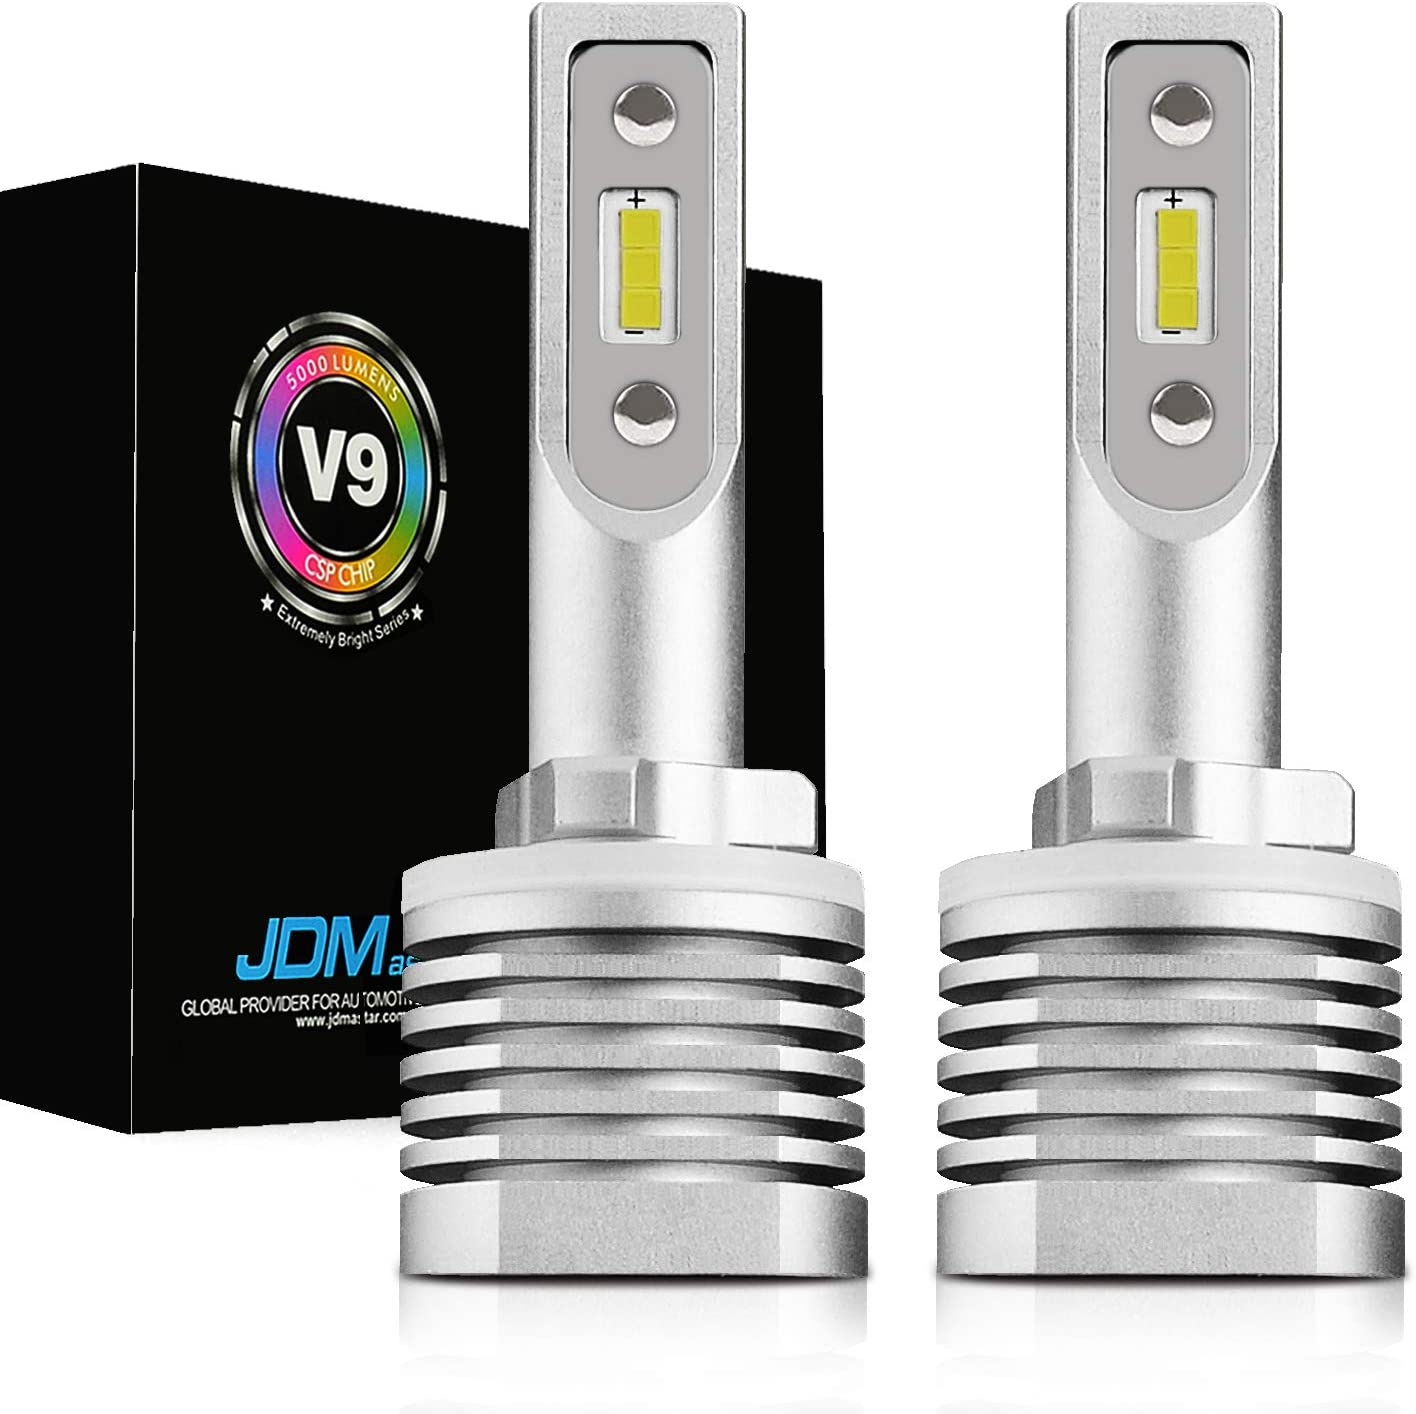 JDM ASTAR High Performance 1:1 Fanless Design Precision Lux Beam 881 White LED Fog Light Bulbs-Focused Beam Pattern no Diffused and Glare